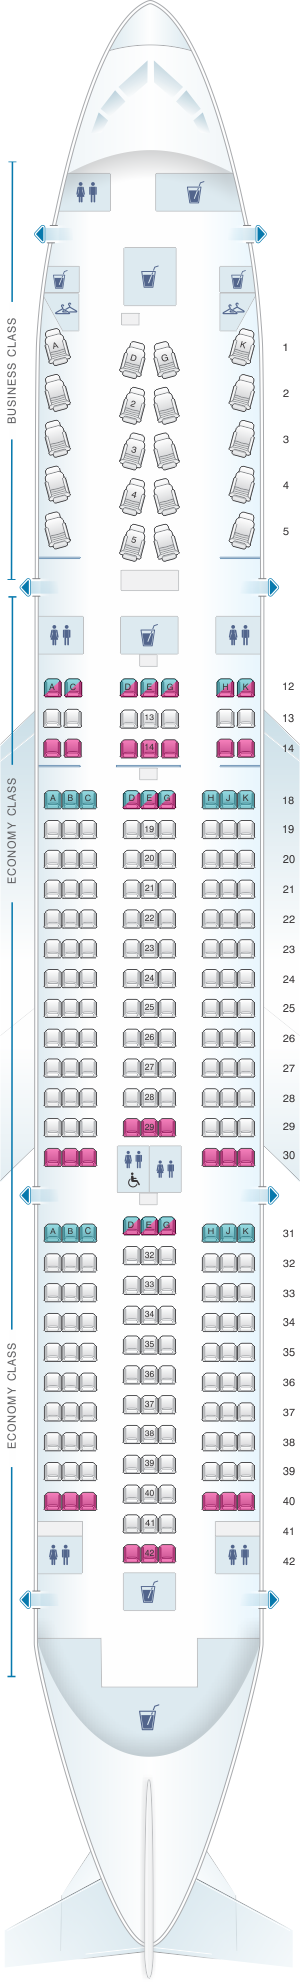 Seat map for Air Canada Boeing B787-8 (788) North America